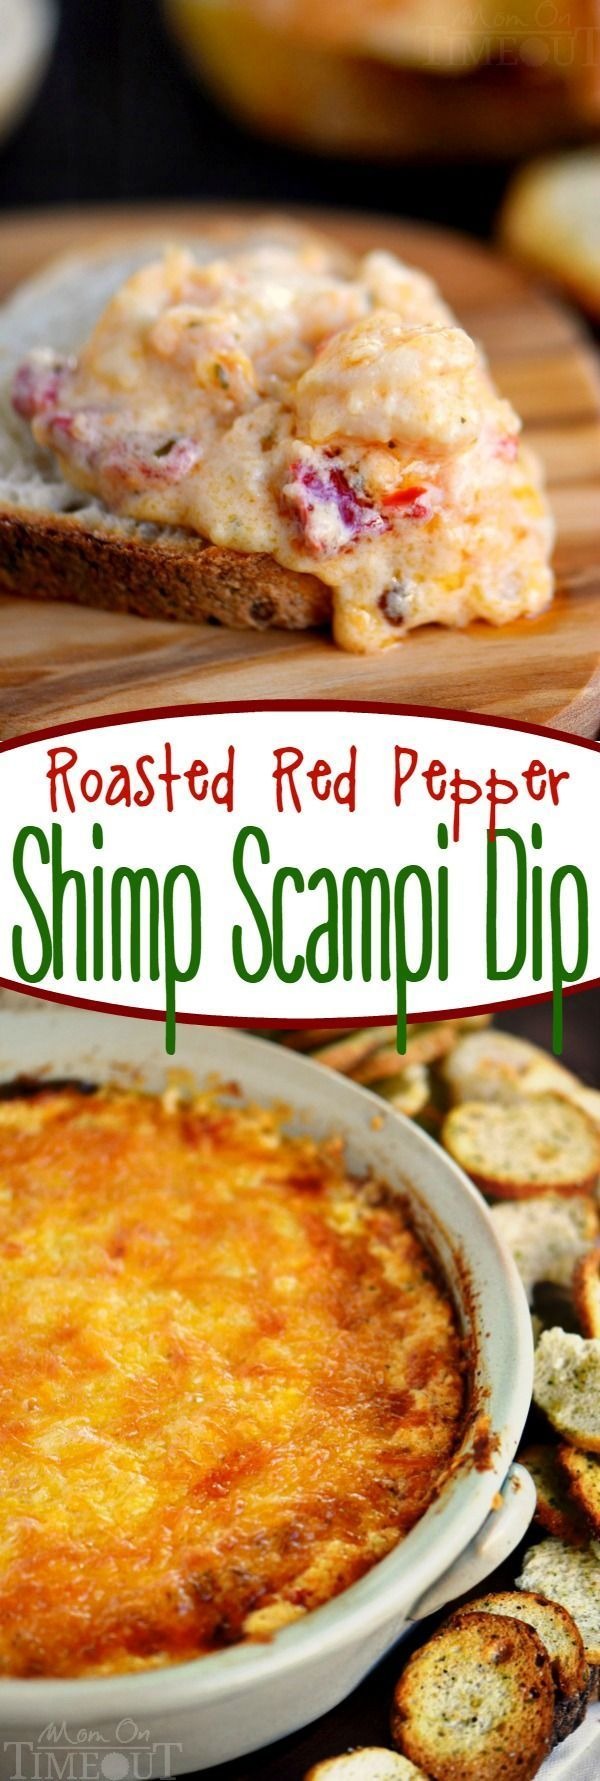 This Roasted Red Pepper Shrimp Scampi Dip is the perfect addition to your game day menu! Garlic, cheese, and roasted red peppers make for a creamy and rich appetizer nobody can resist!